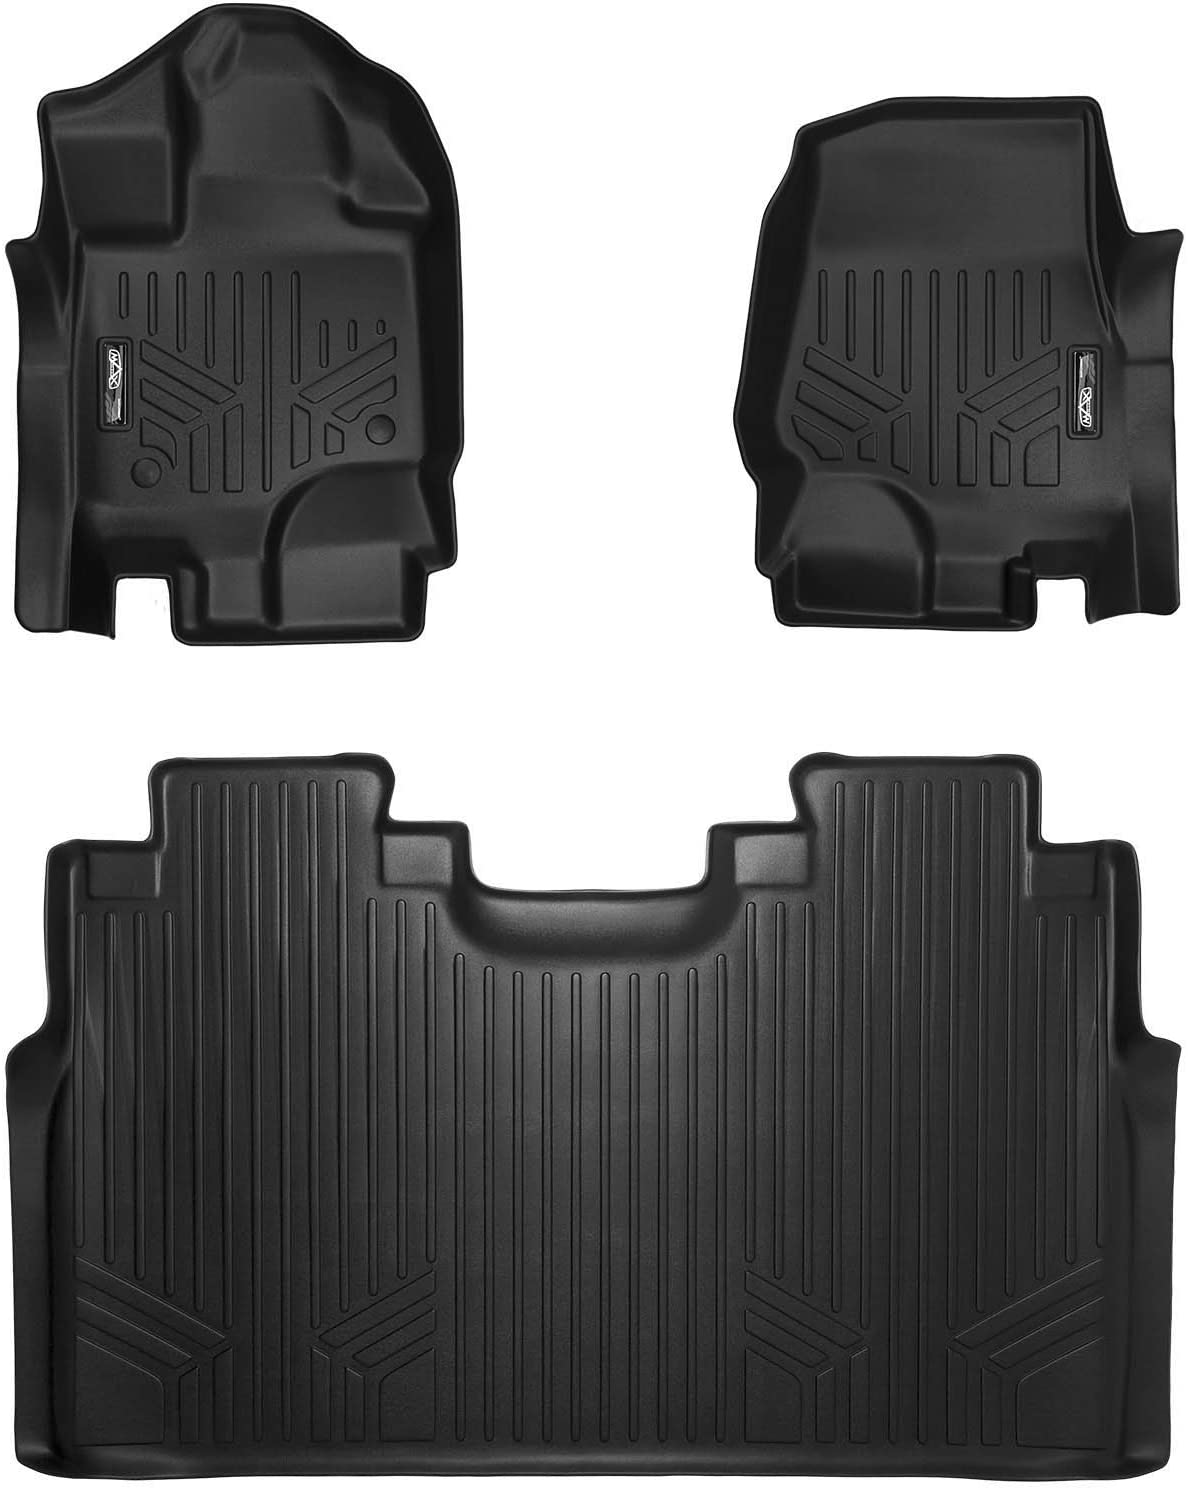 MAXLINER Floor Year-end gift Mats 2 Row Liner Set for F-1 2015-2018 Ford Black ! Super beauty product restock quality top!